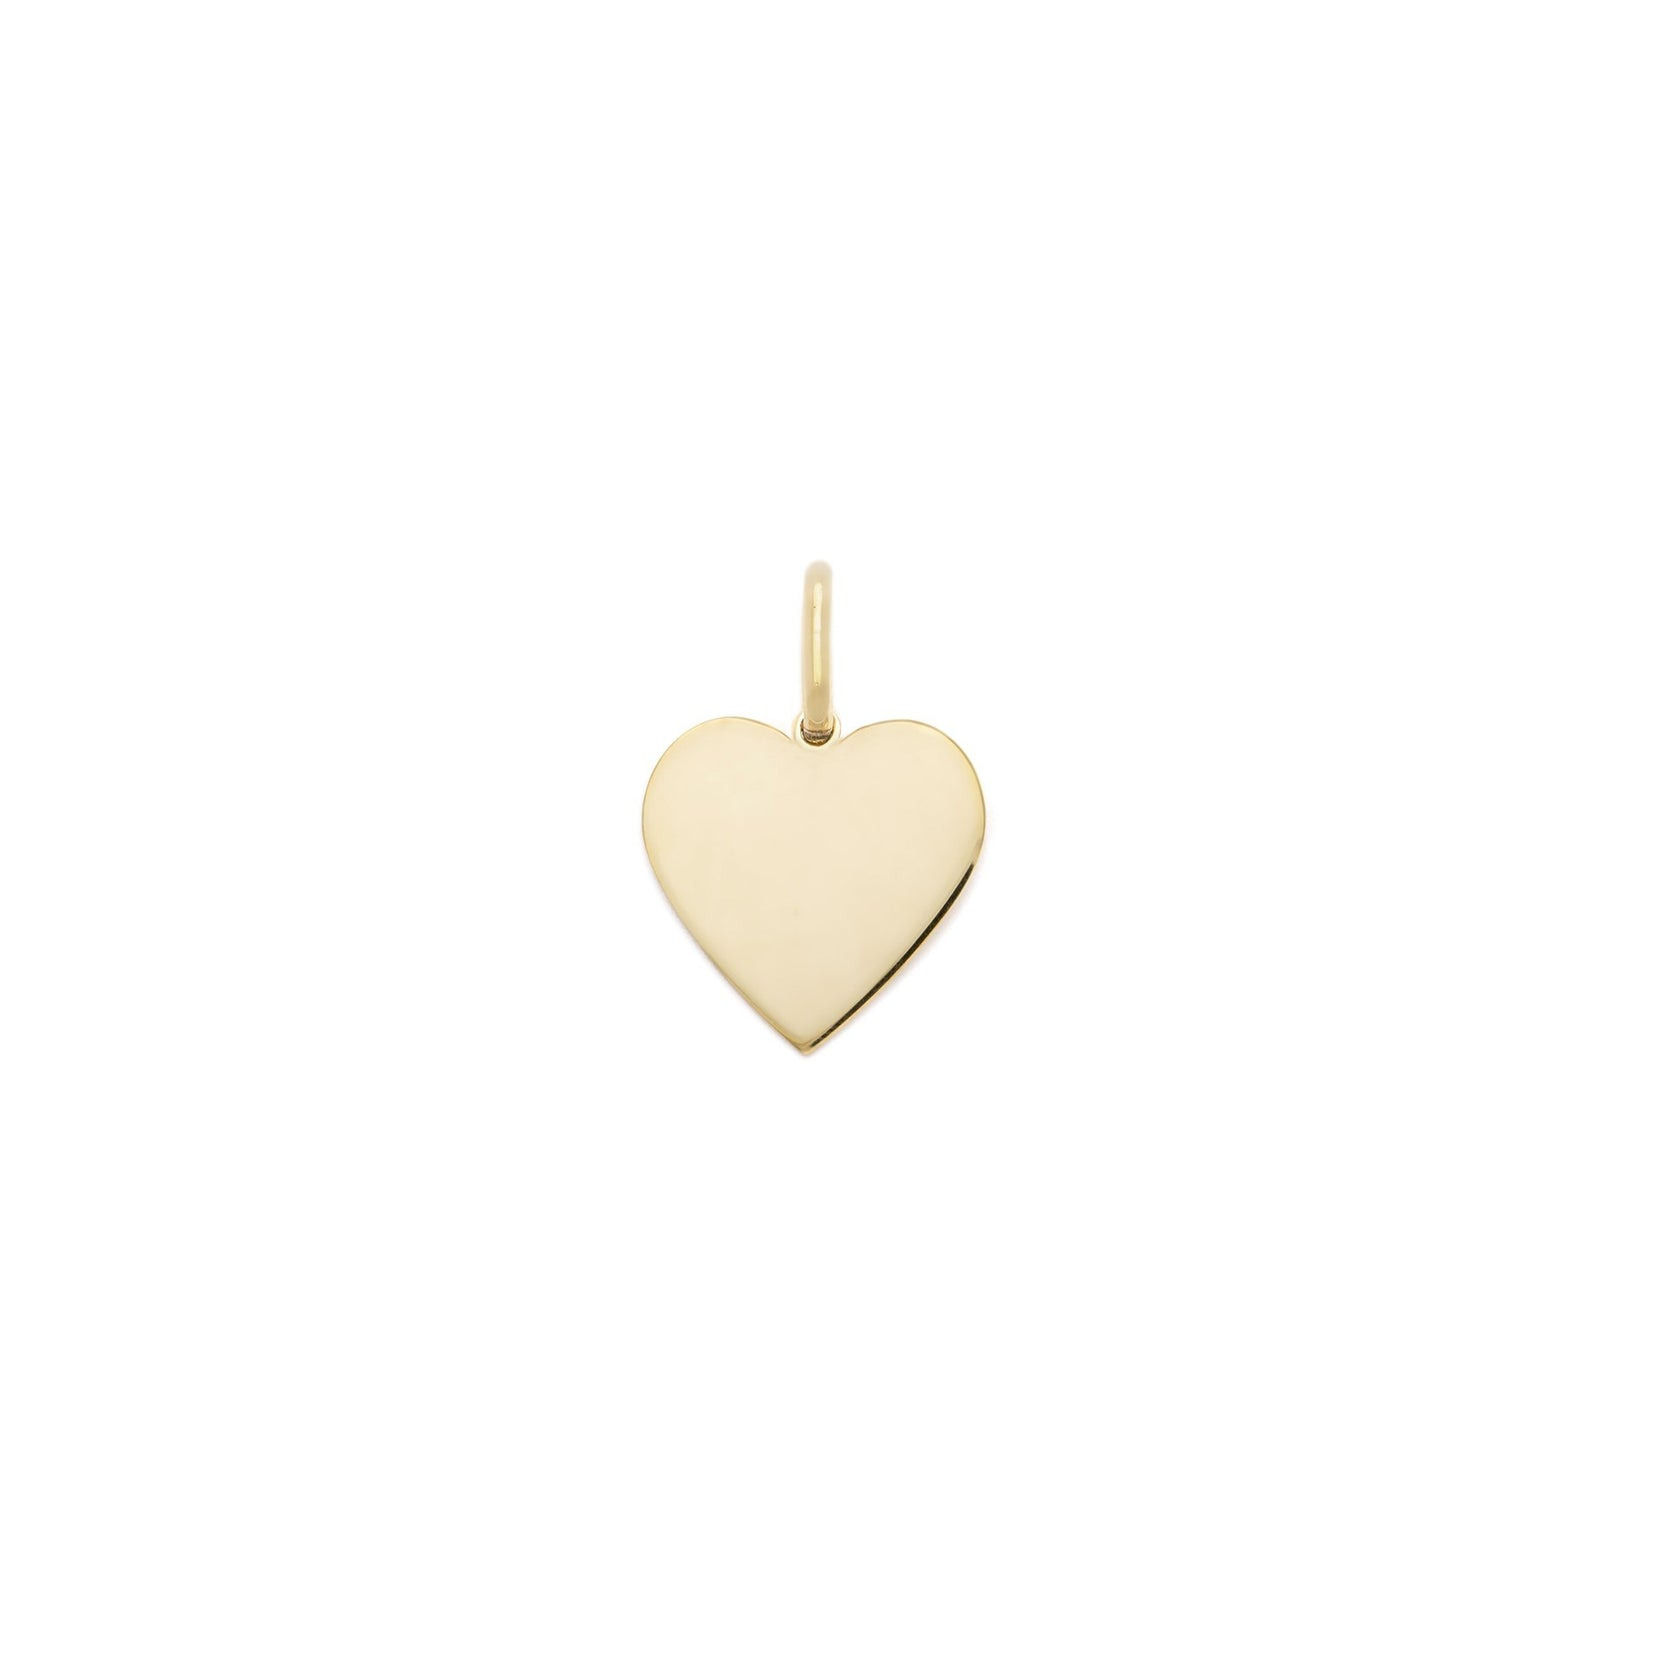 10mm Heart Charm - Gold Vermeil